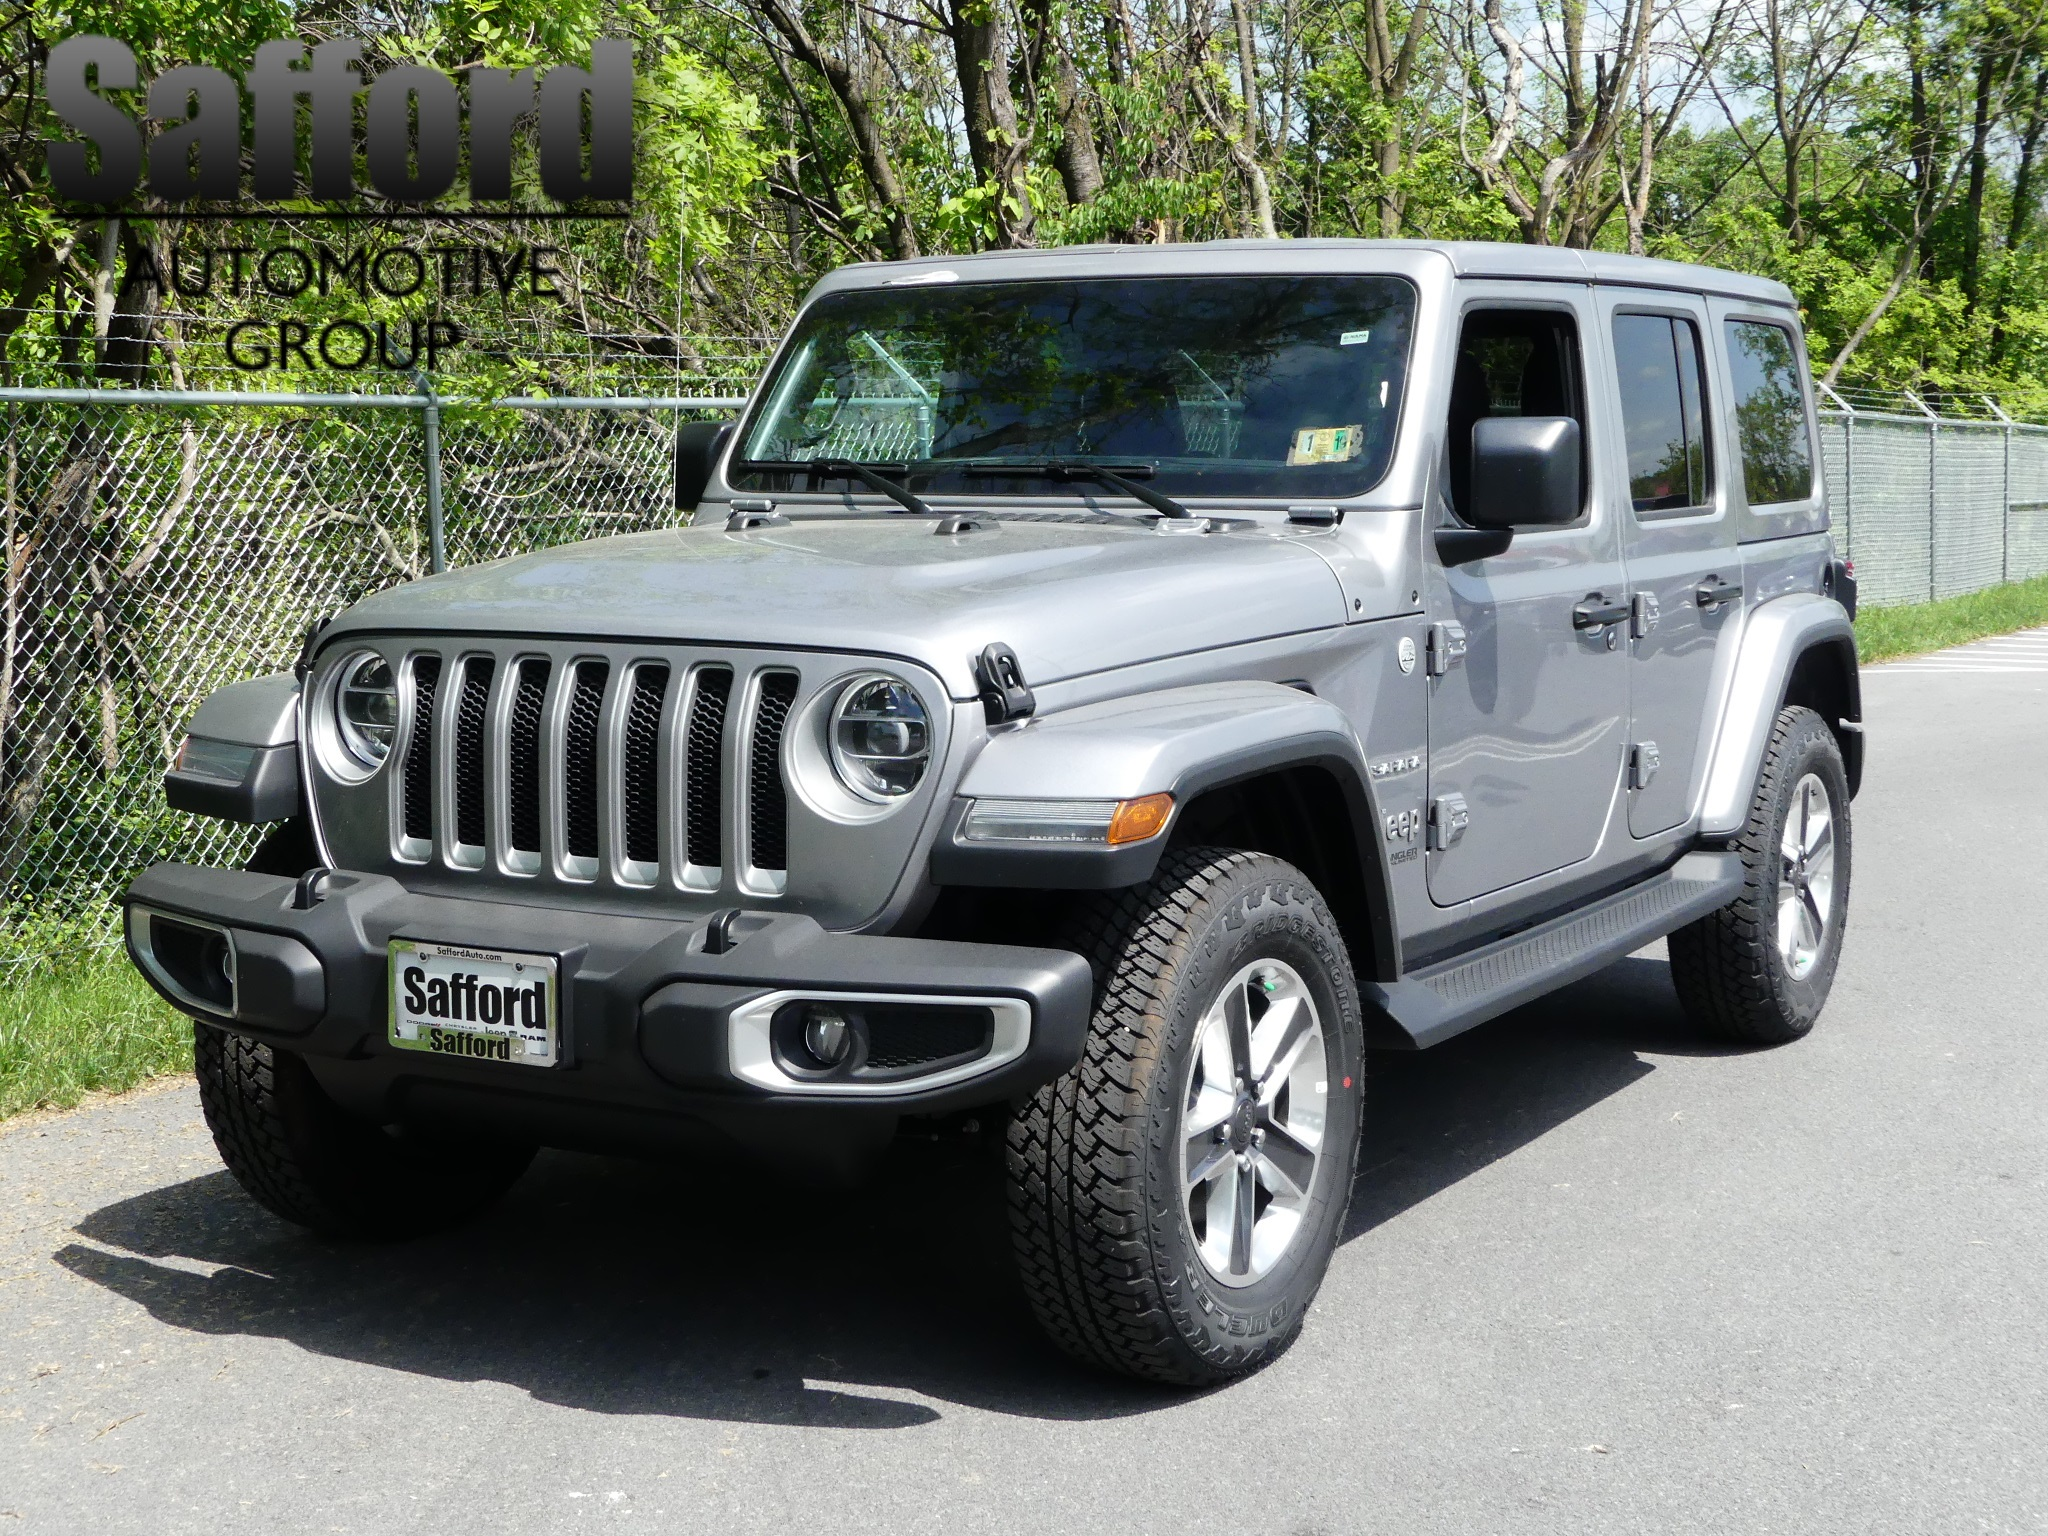 road rubicon rig jk wrangler at all outgoing as engineers off the haven well capabilities teraflex stock news our arrives t its any jku testing for taking wasted new jlu time baseline compare jeep to items unlimited model